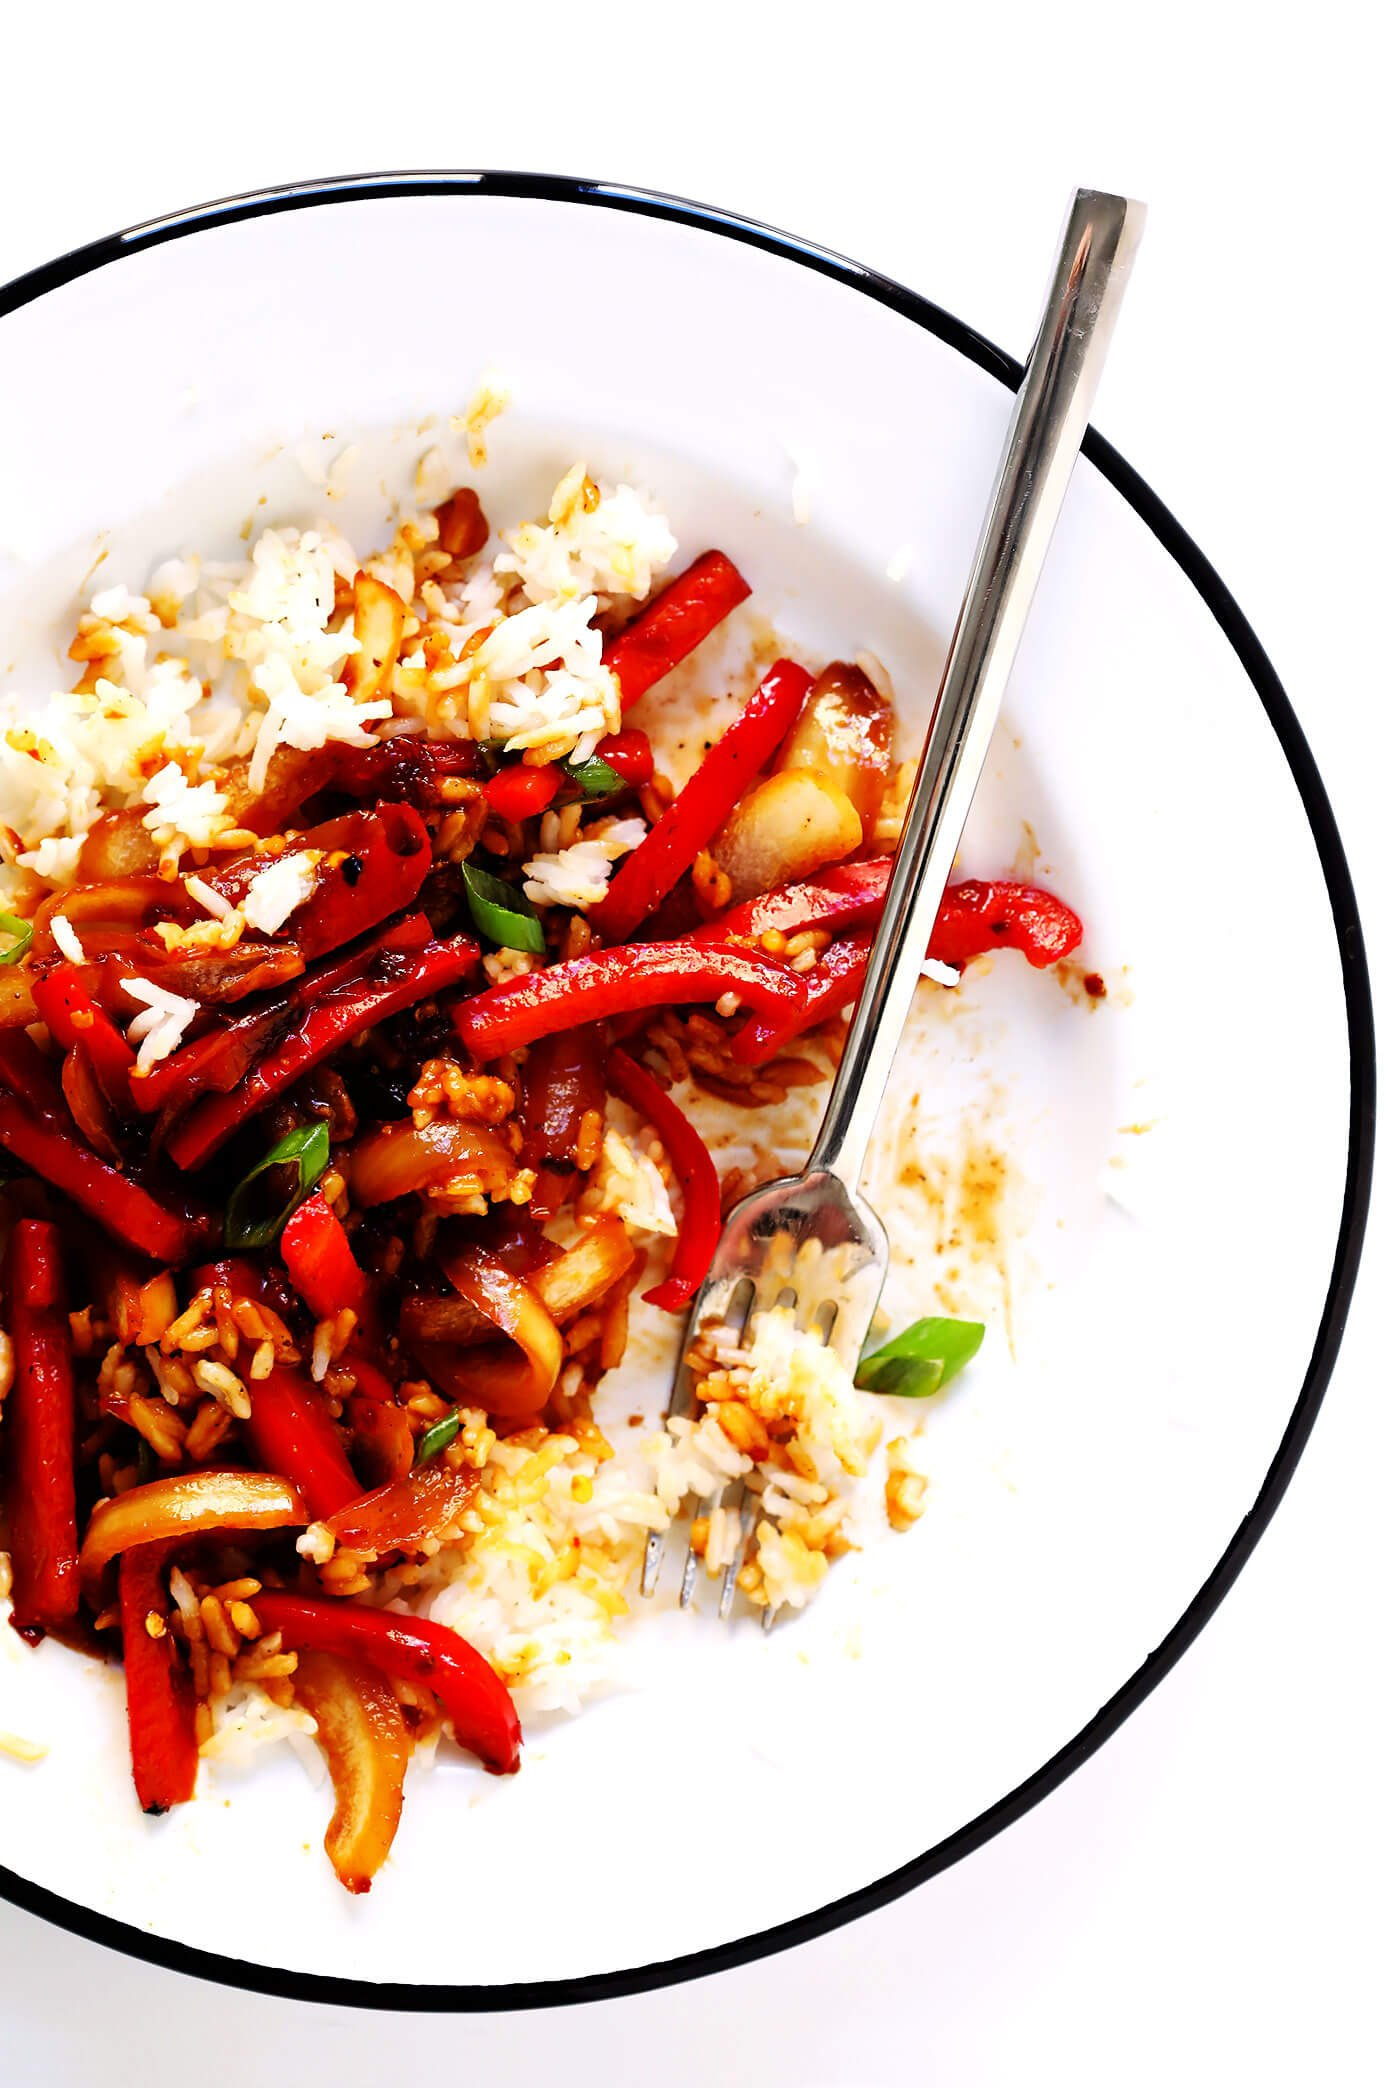 Spicy Szechuan Stir-Fry with Steak and Vegetables